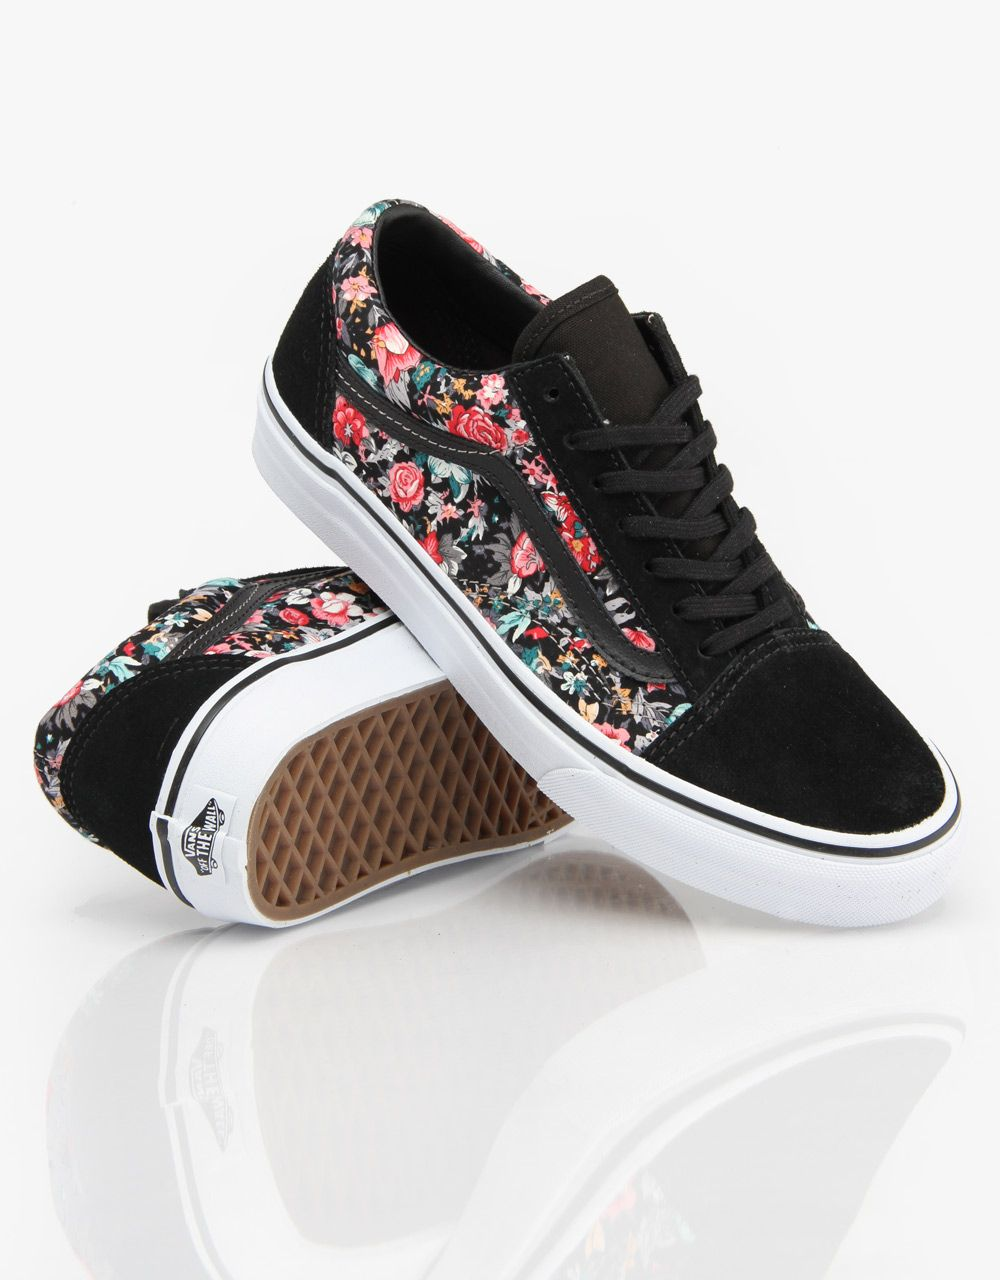 vans old skool girls skate shoes multi floral black true. Black Bedroom Furniture Sets. Home Design Ideas